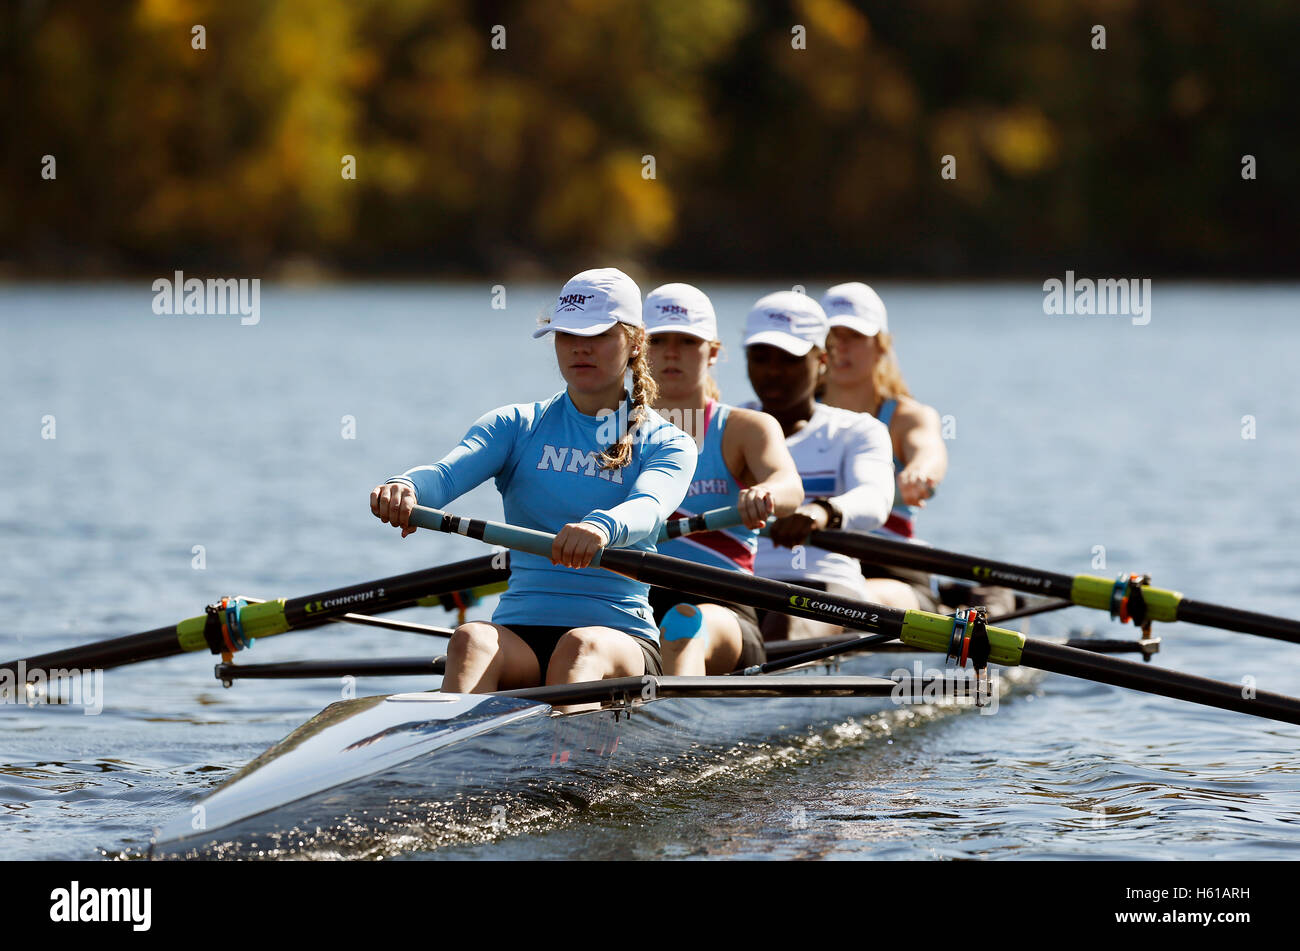 High school team sports, rowing on the Connecticut River, Gill, Massachusetts - Stock Image